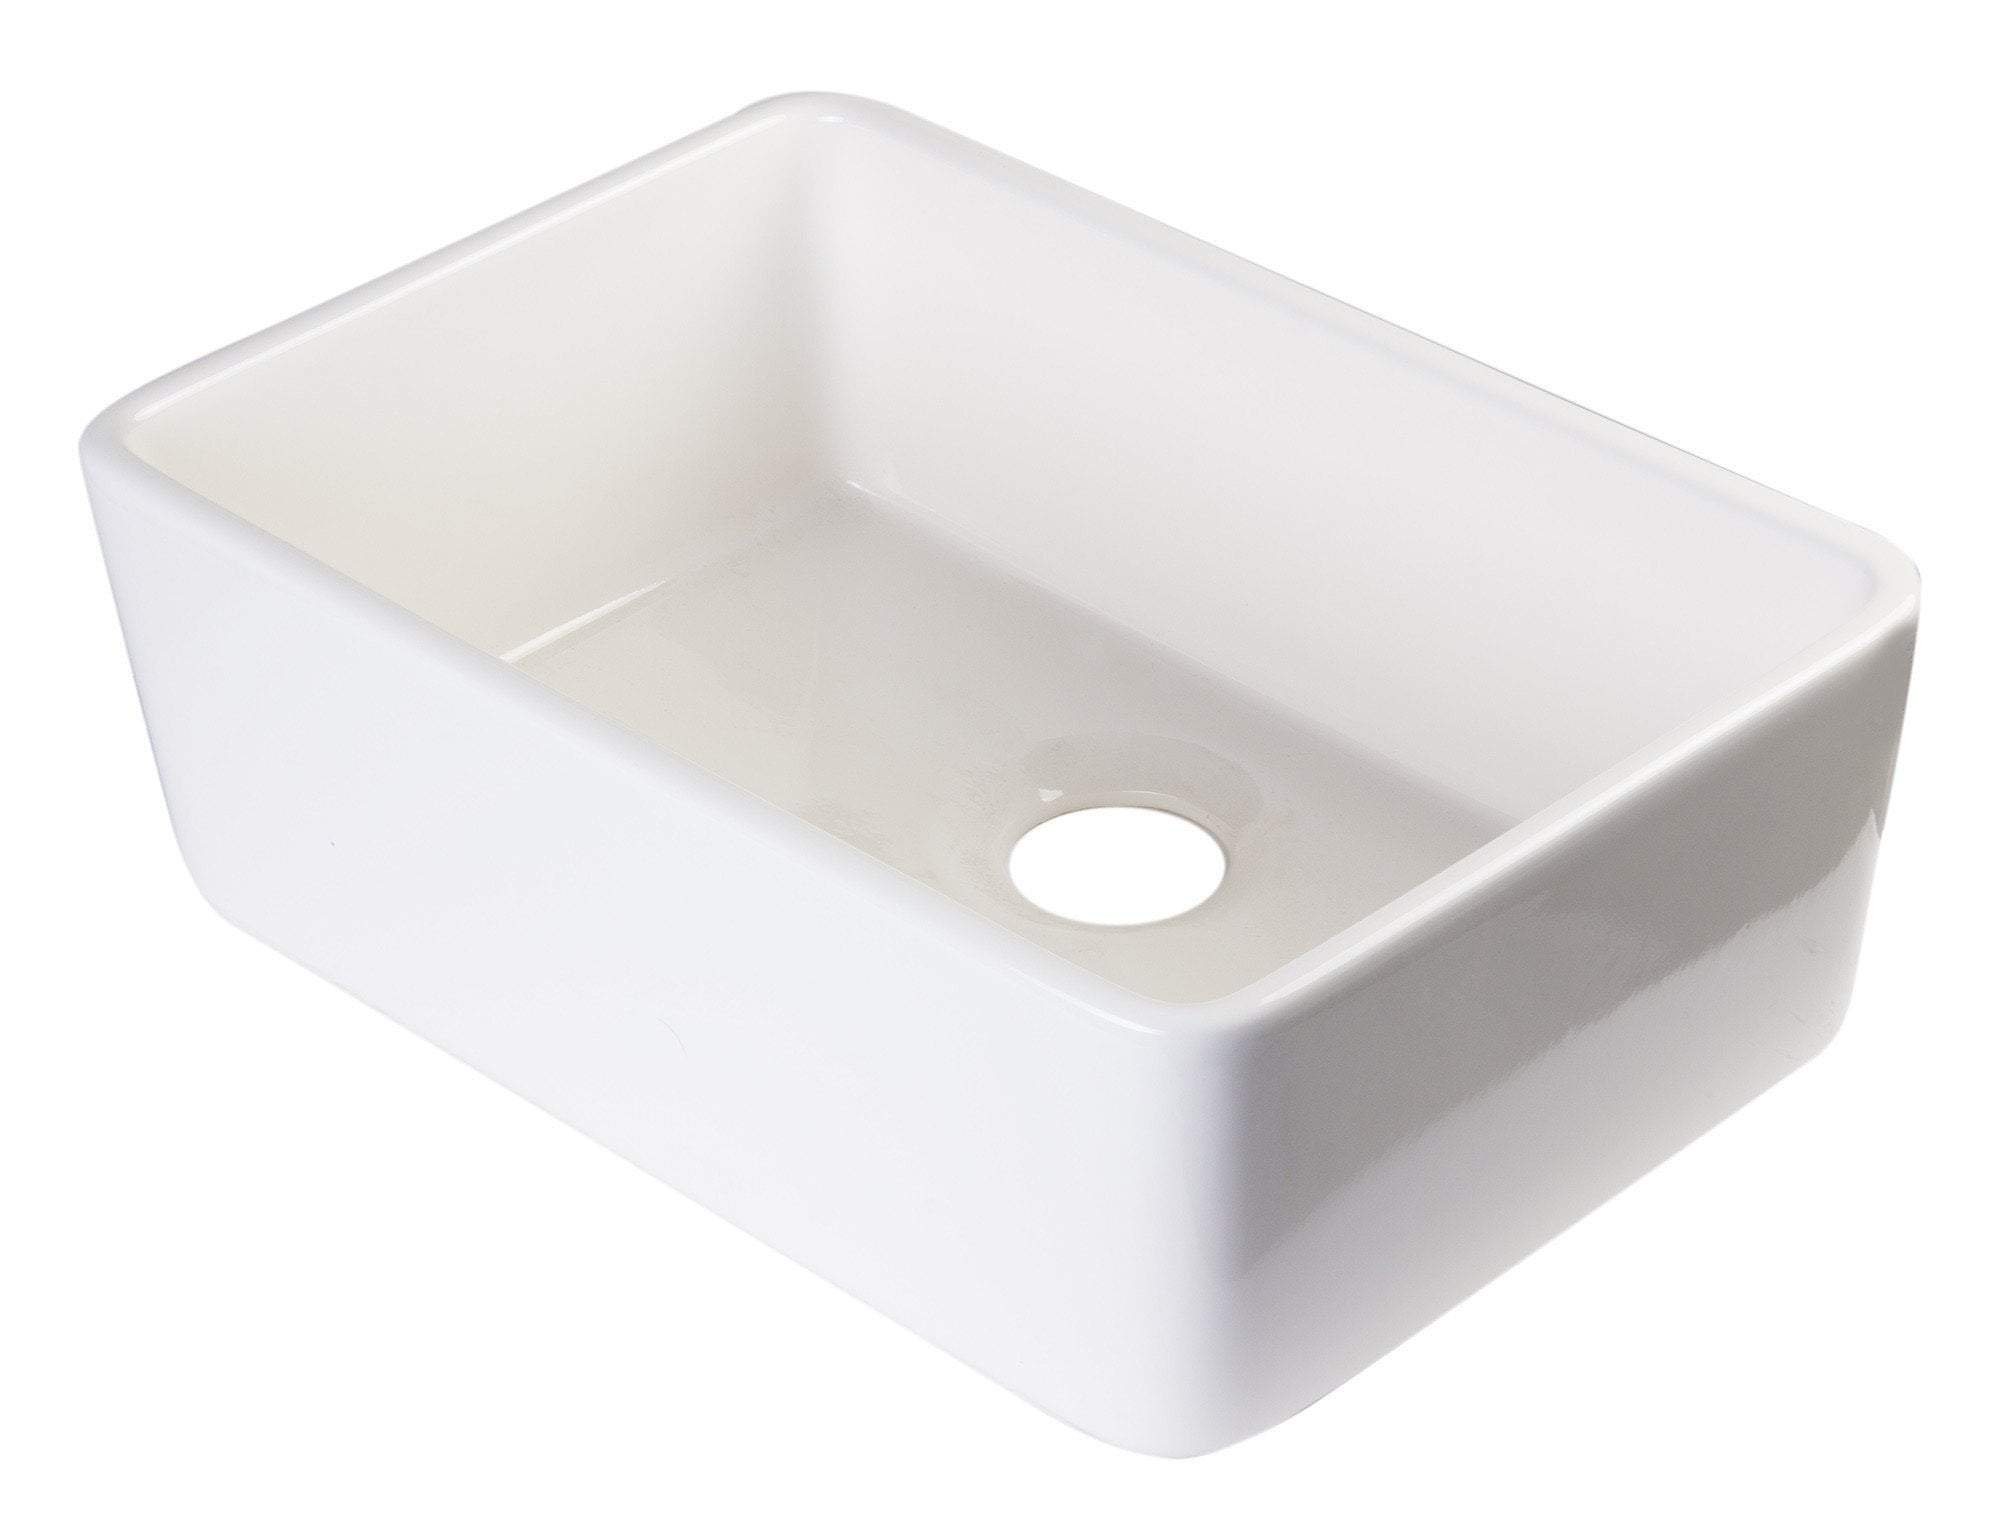 alfi biscuit 23 fireclay single bowl farmhouse kitchen sink ab503 b